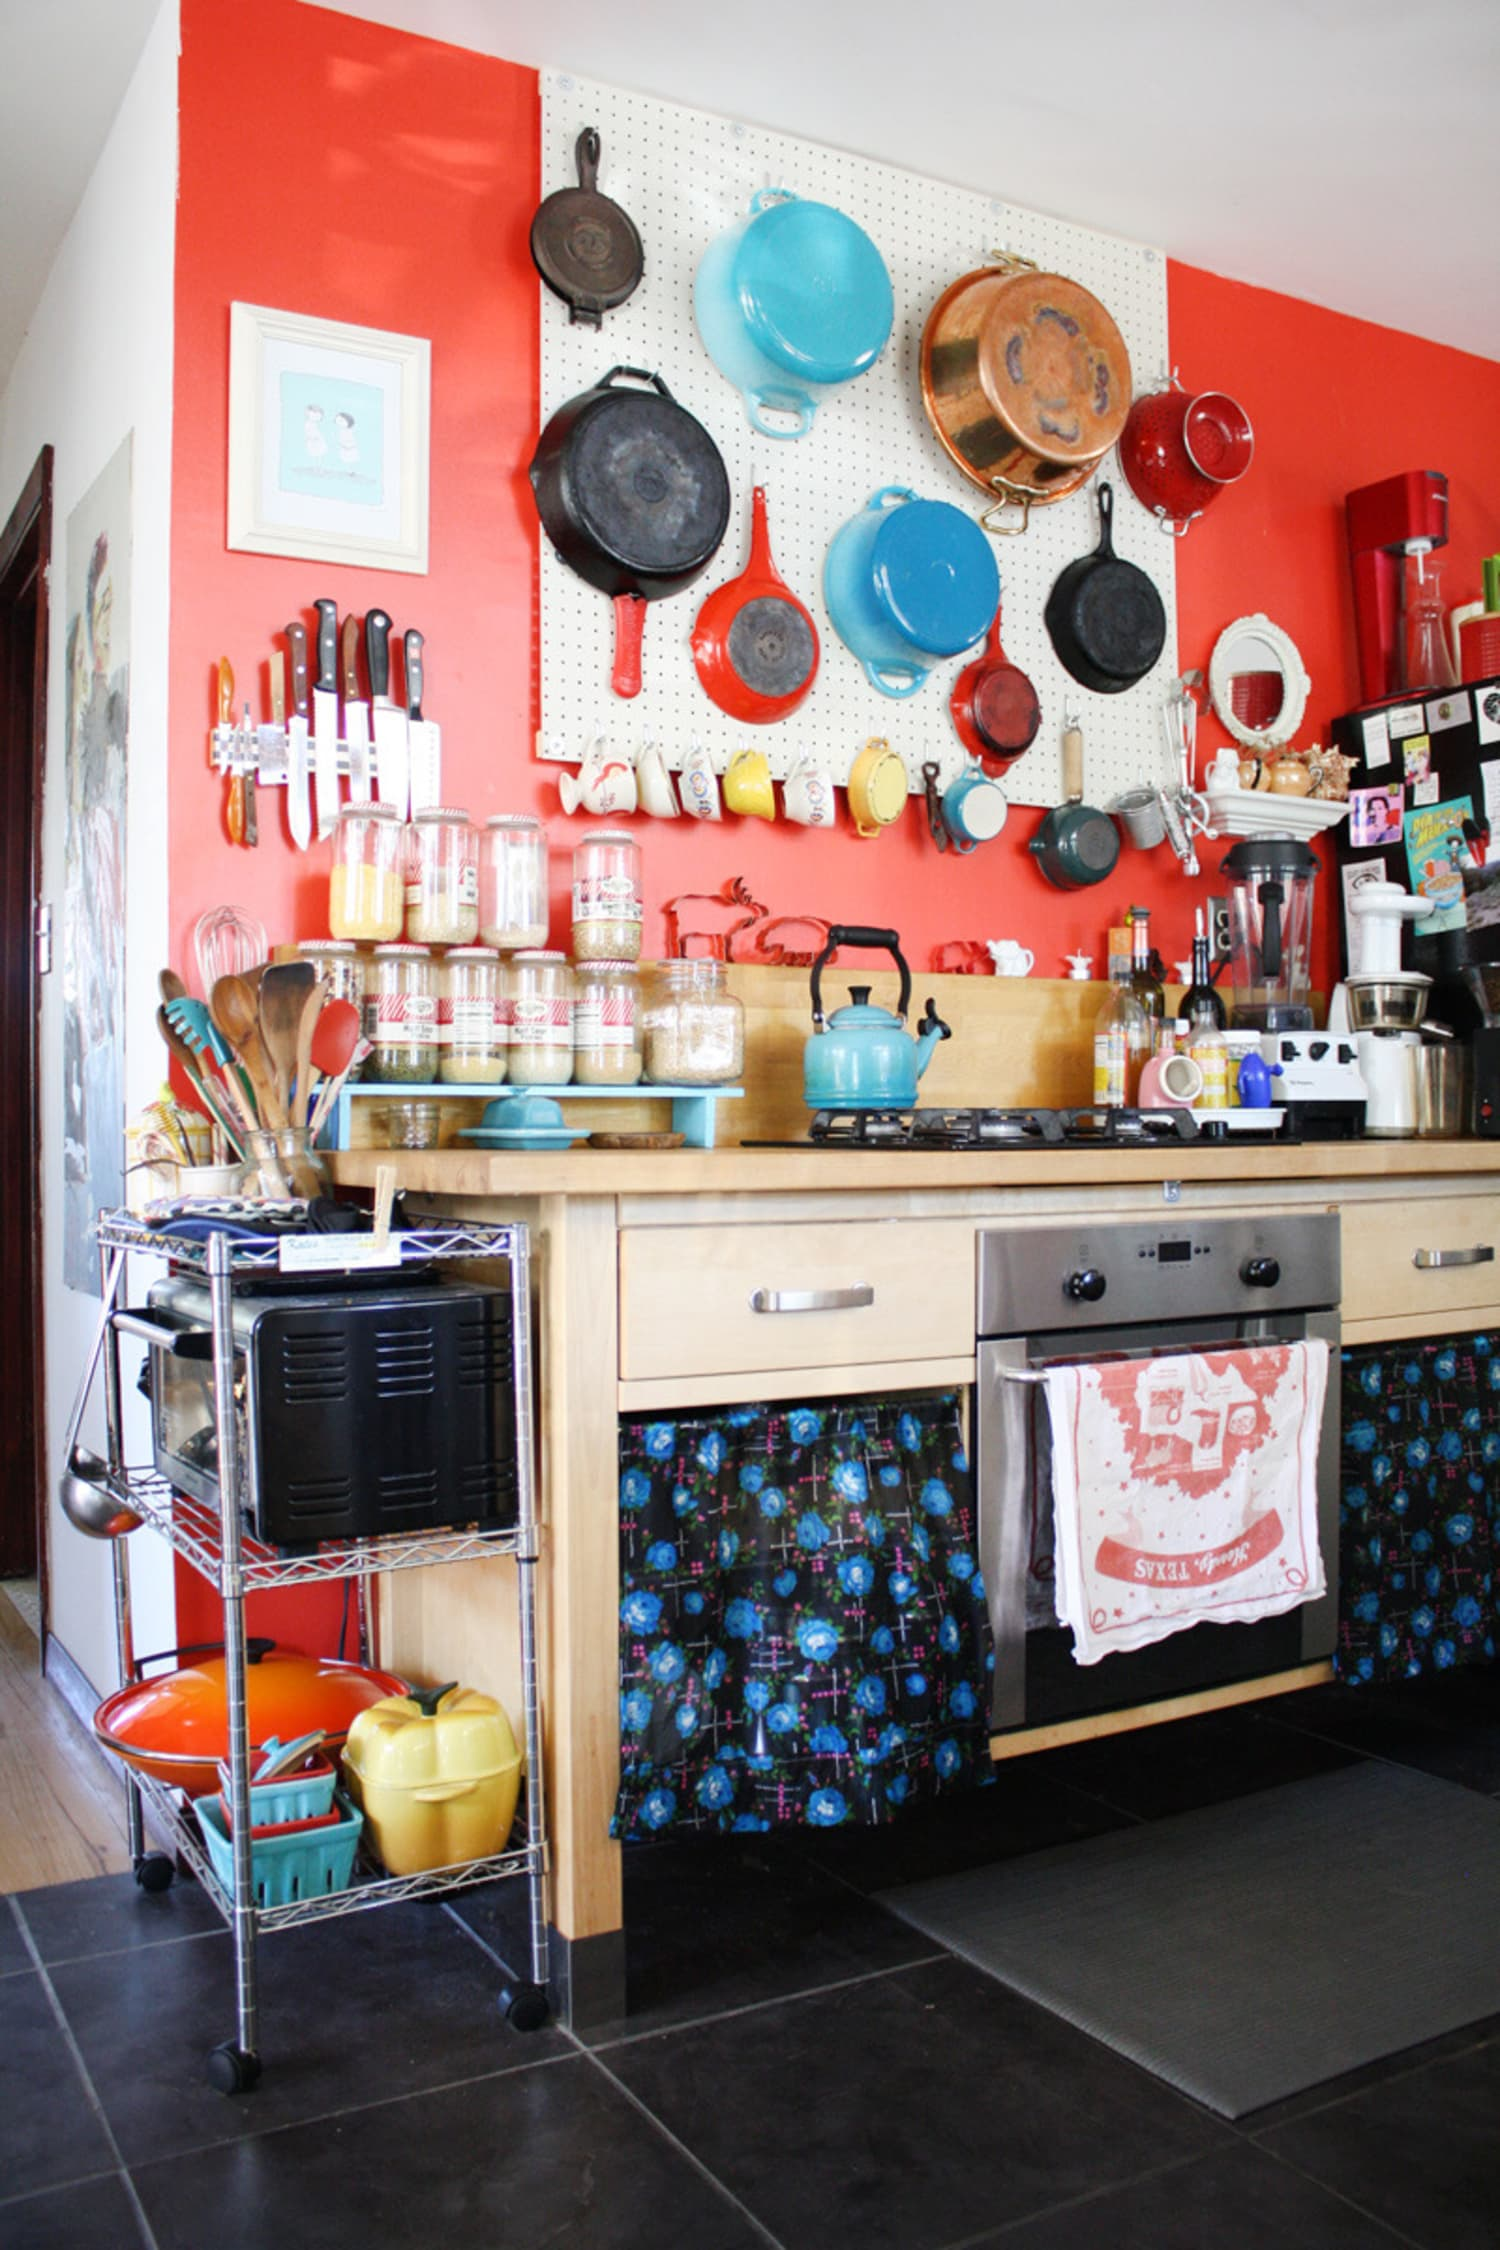 Small Kitchen Ideas: 8 Smart Storage Tricks Anyone Can Try ...